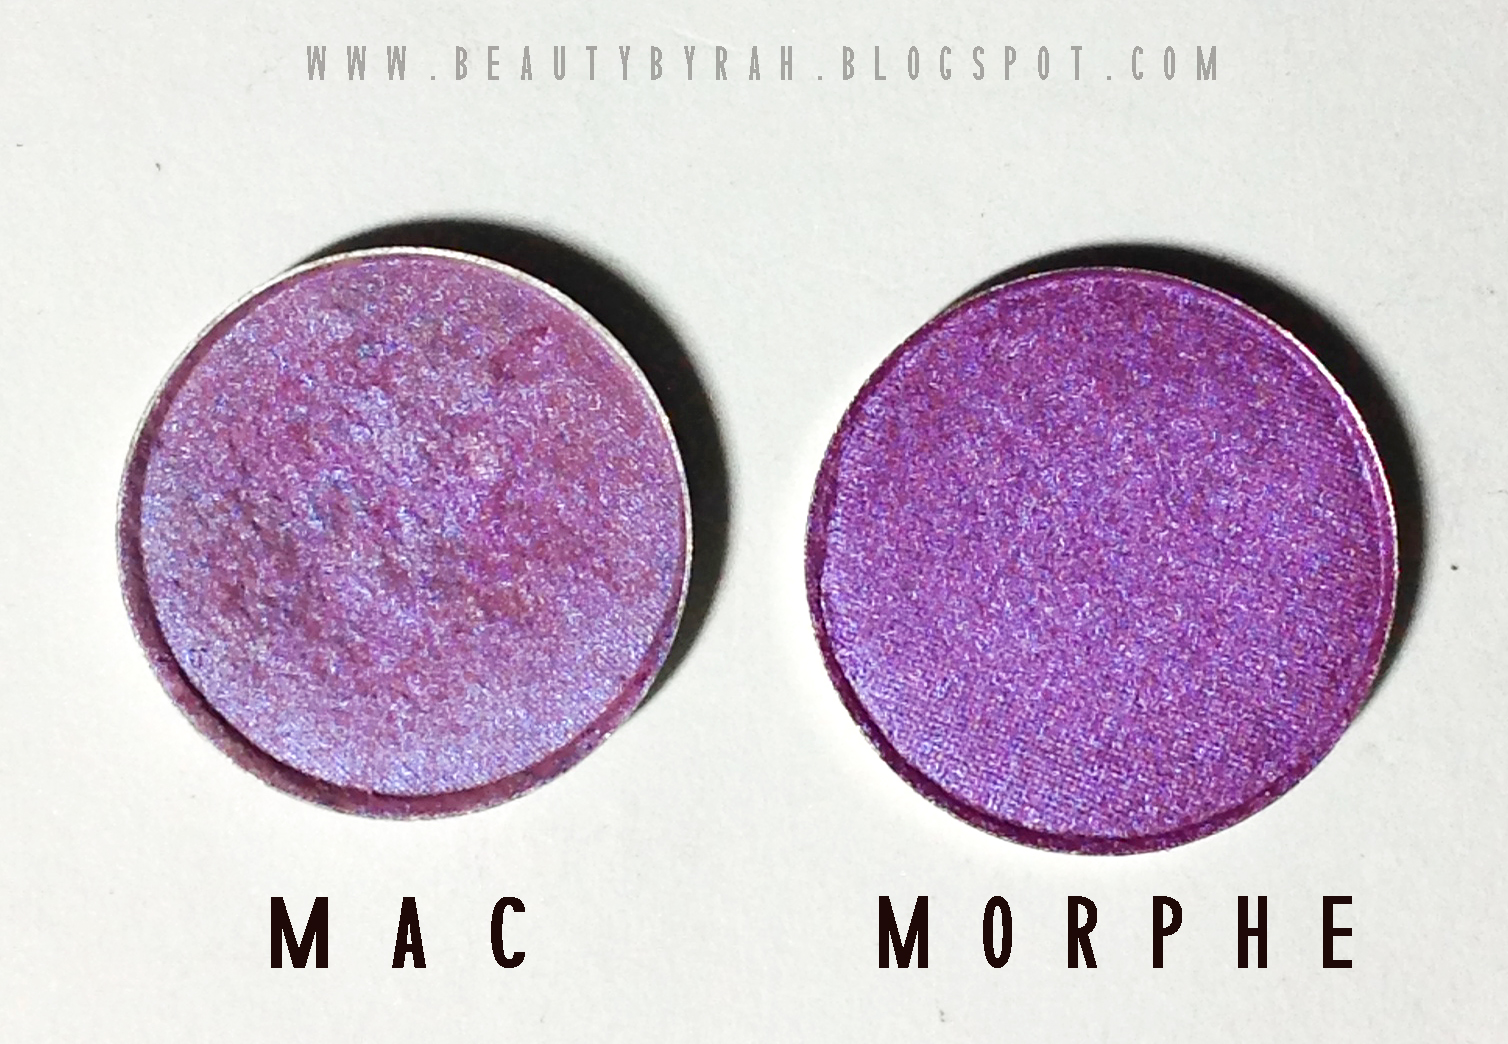 comparison between morphe and mac eyeshadows